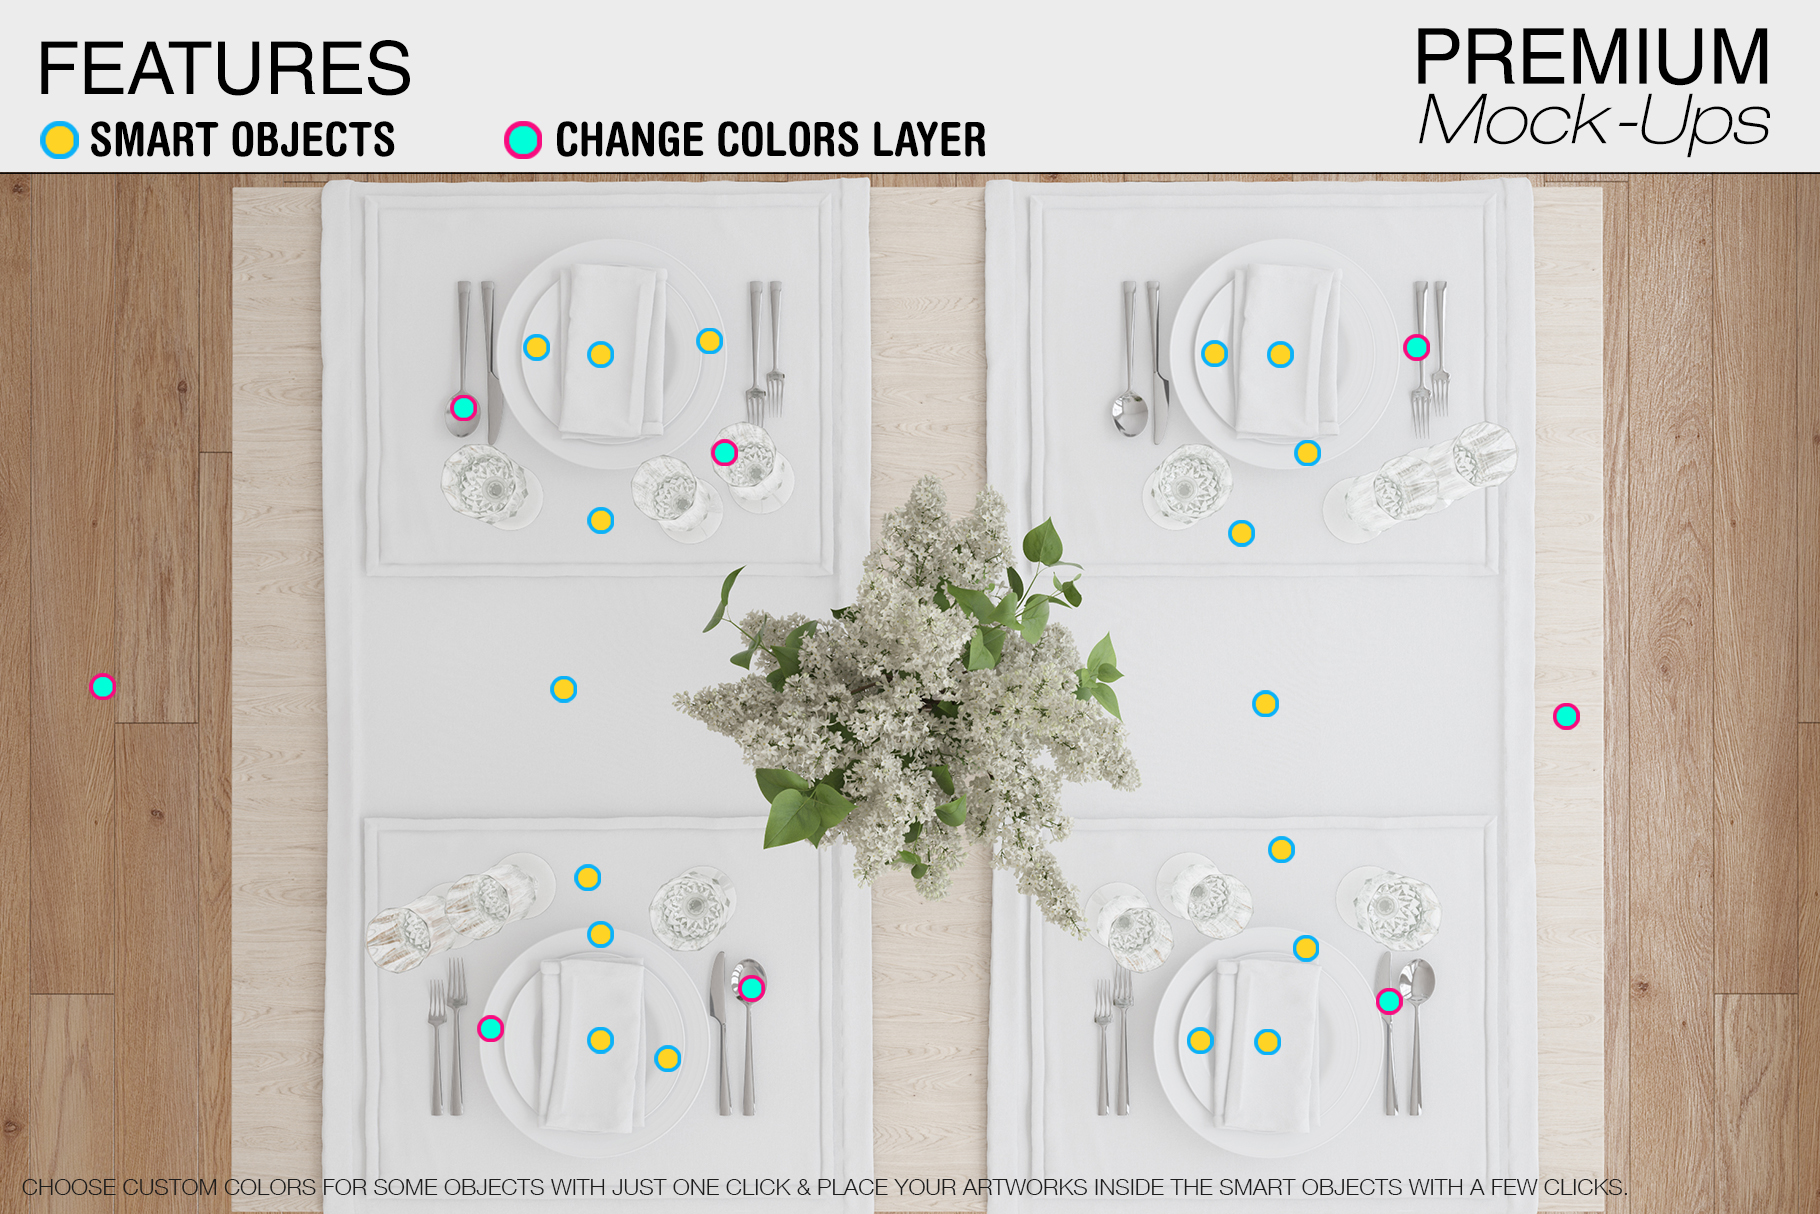 Tablecloth, Runner, Napkins & Plates example image 7